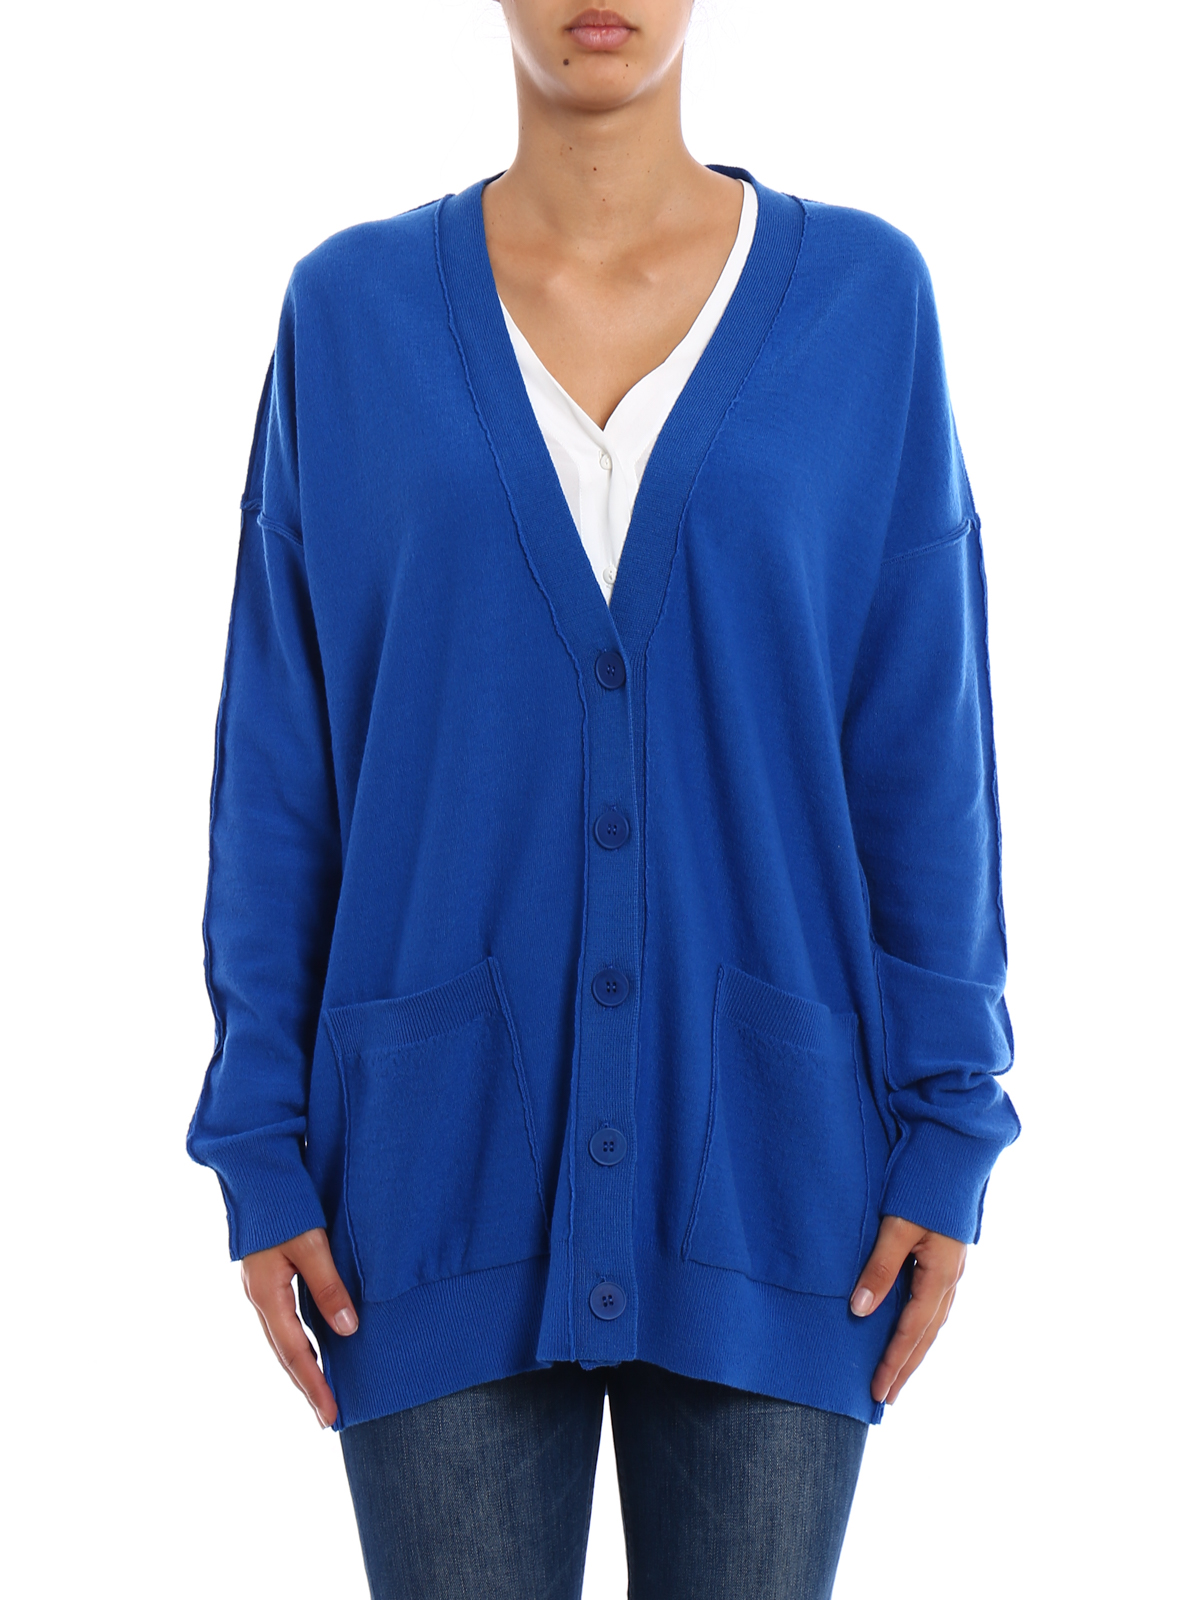 Exposed stitchings wool cardigan by Stella Mccartney - cardigans ...